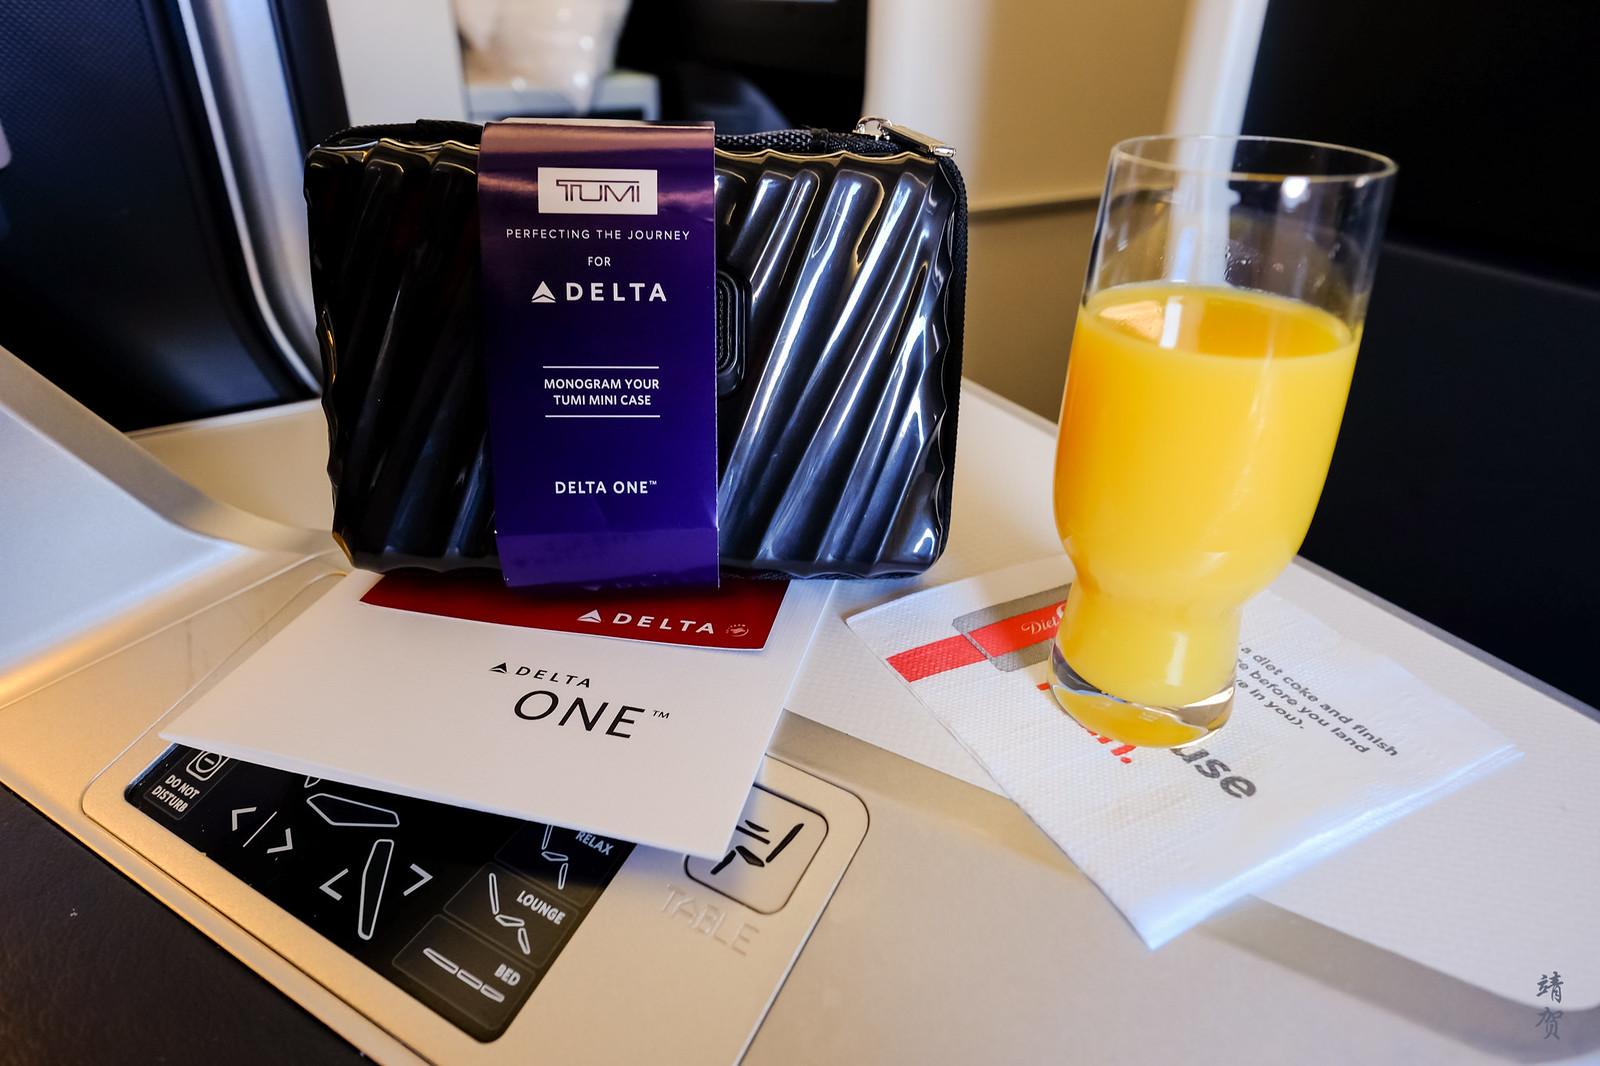 Tumi amenity kit and pre-departure beverage